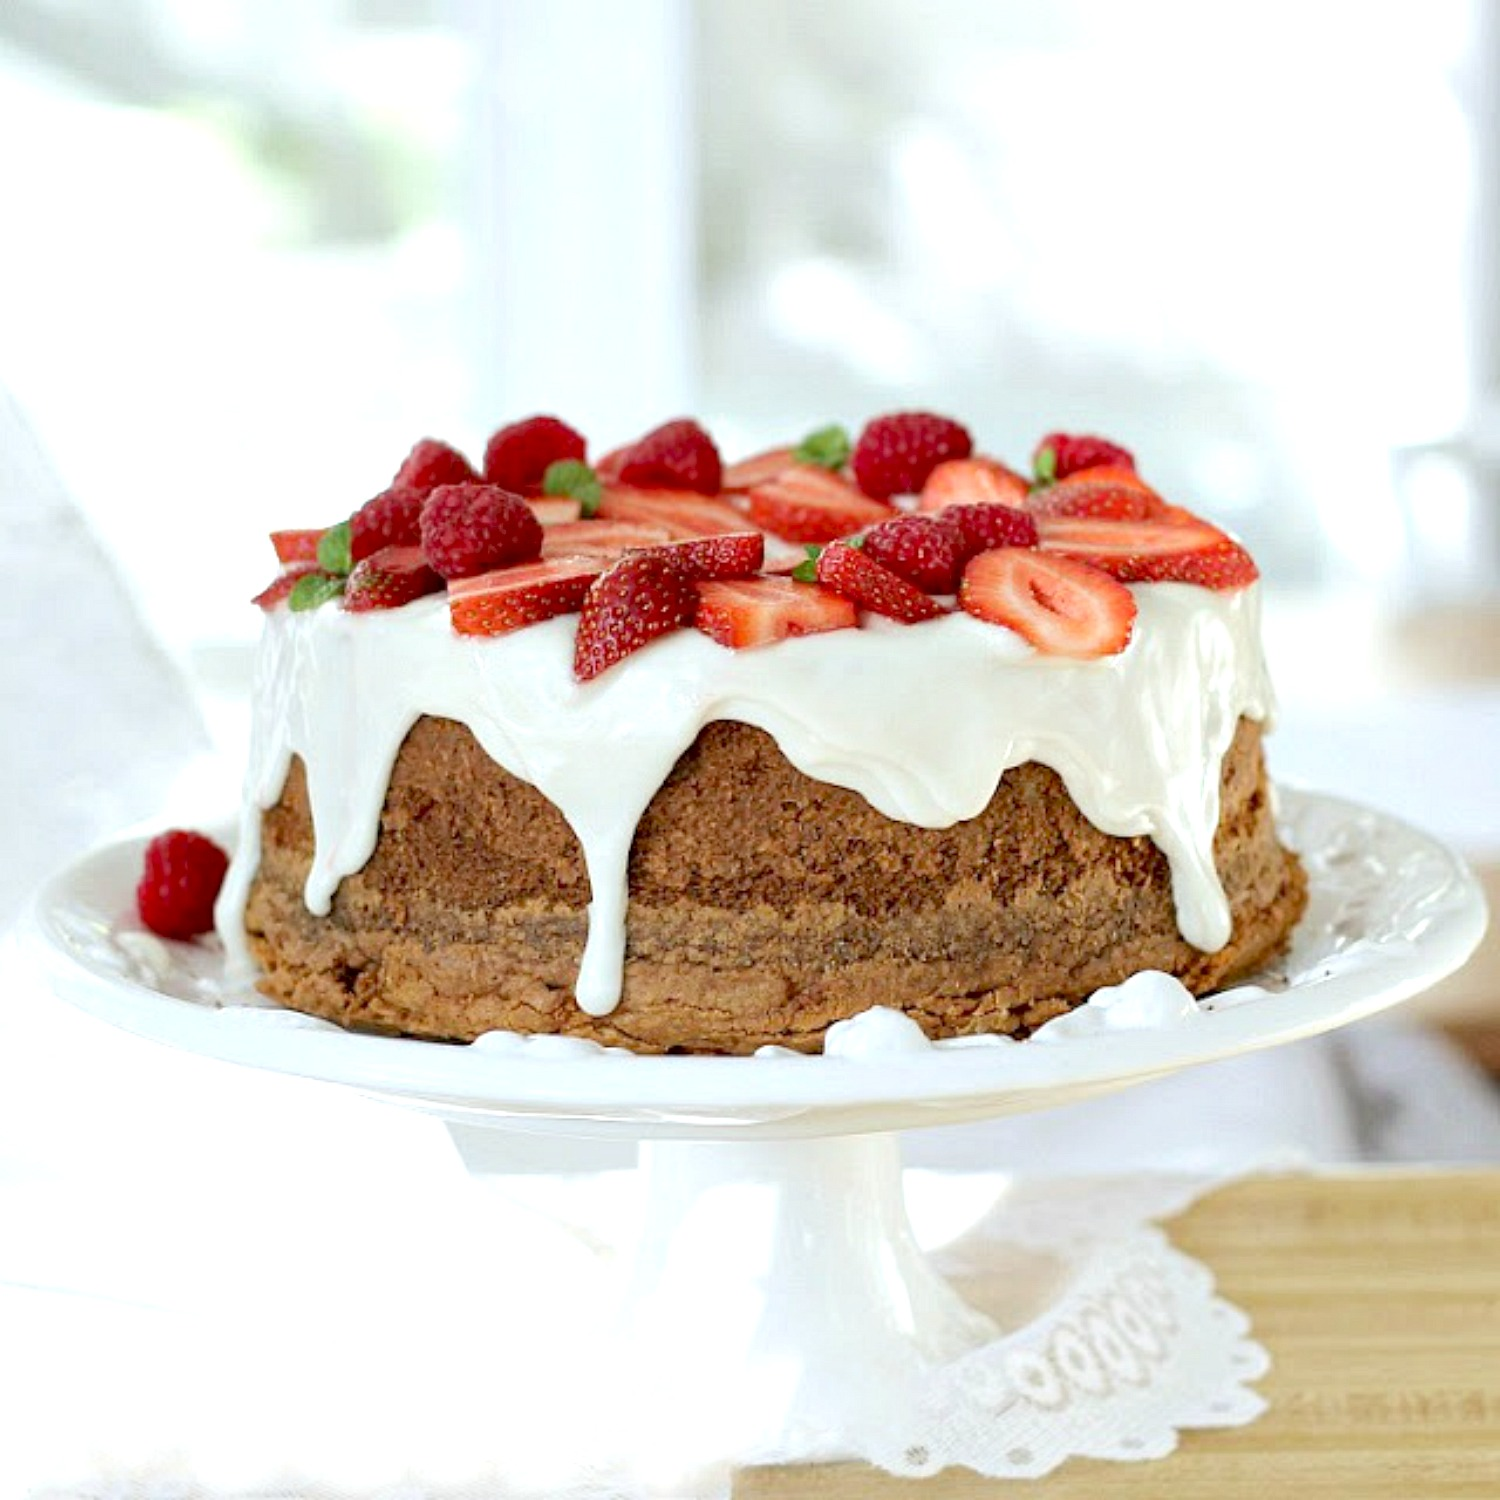 Cream cheese pound cake with snowy white frosting topped with strawberries for a beautiful dessert.